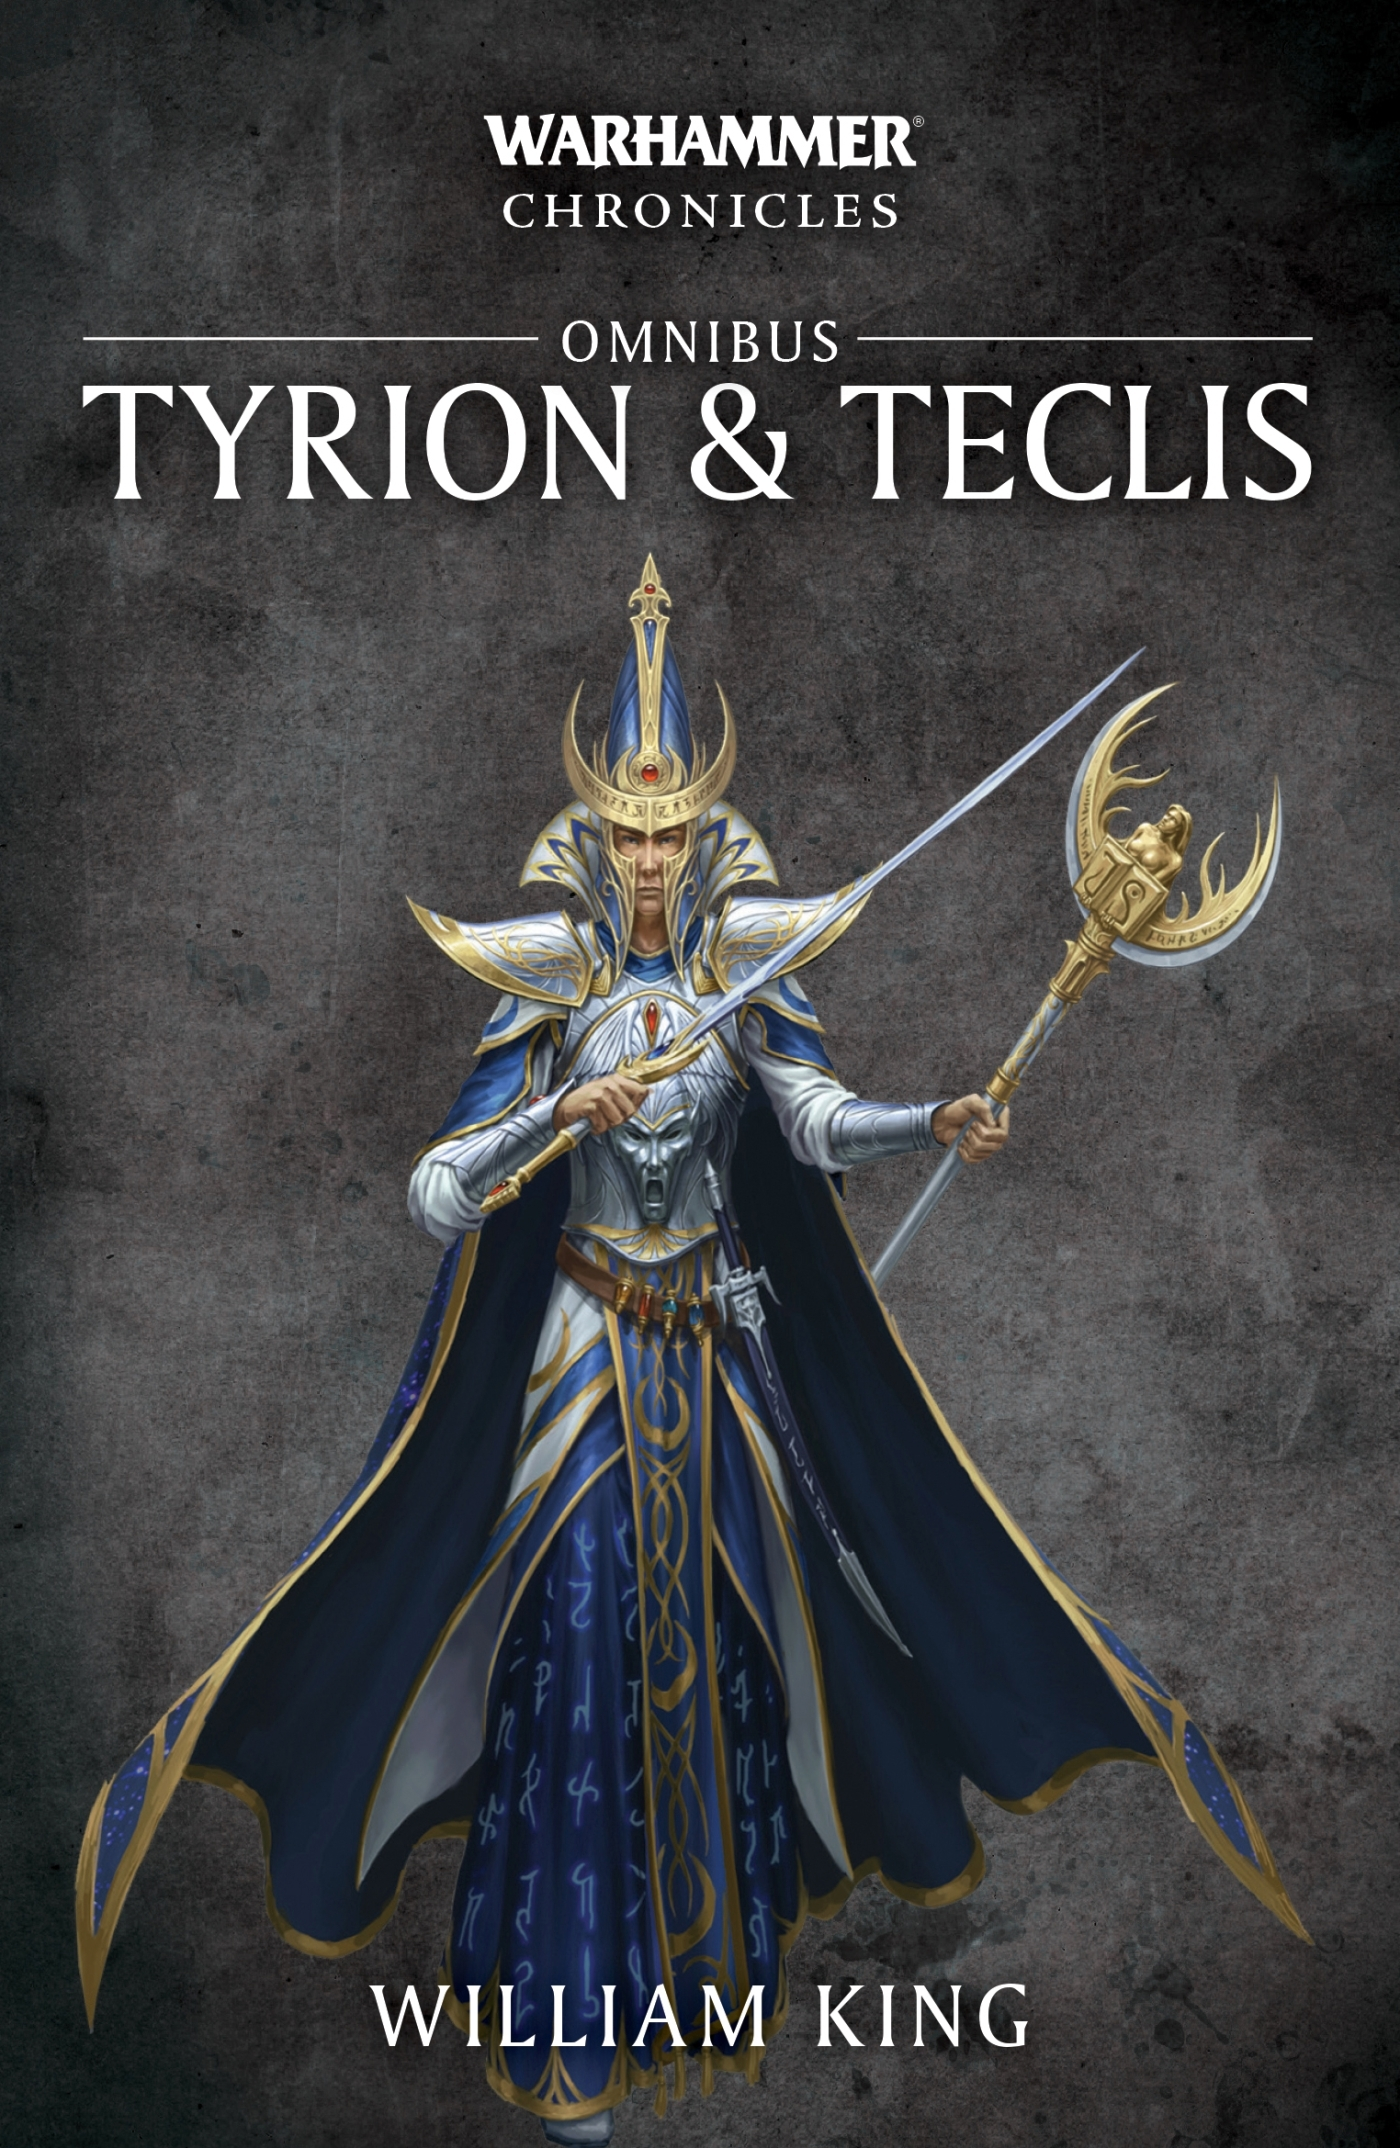 WARHAMMER CHRONICLES : TYRION & TECLIS